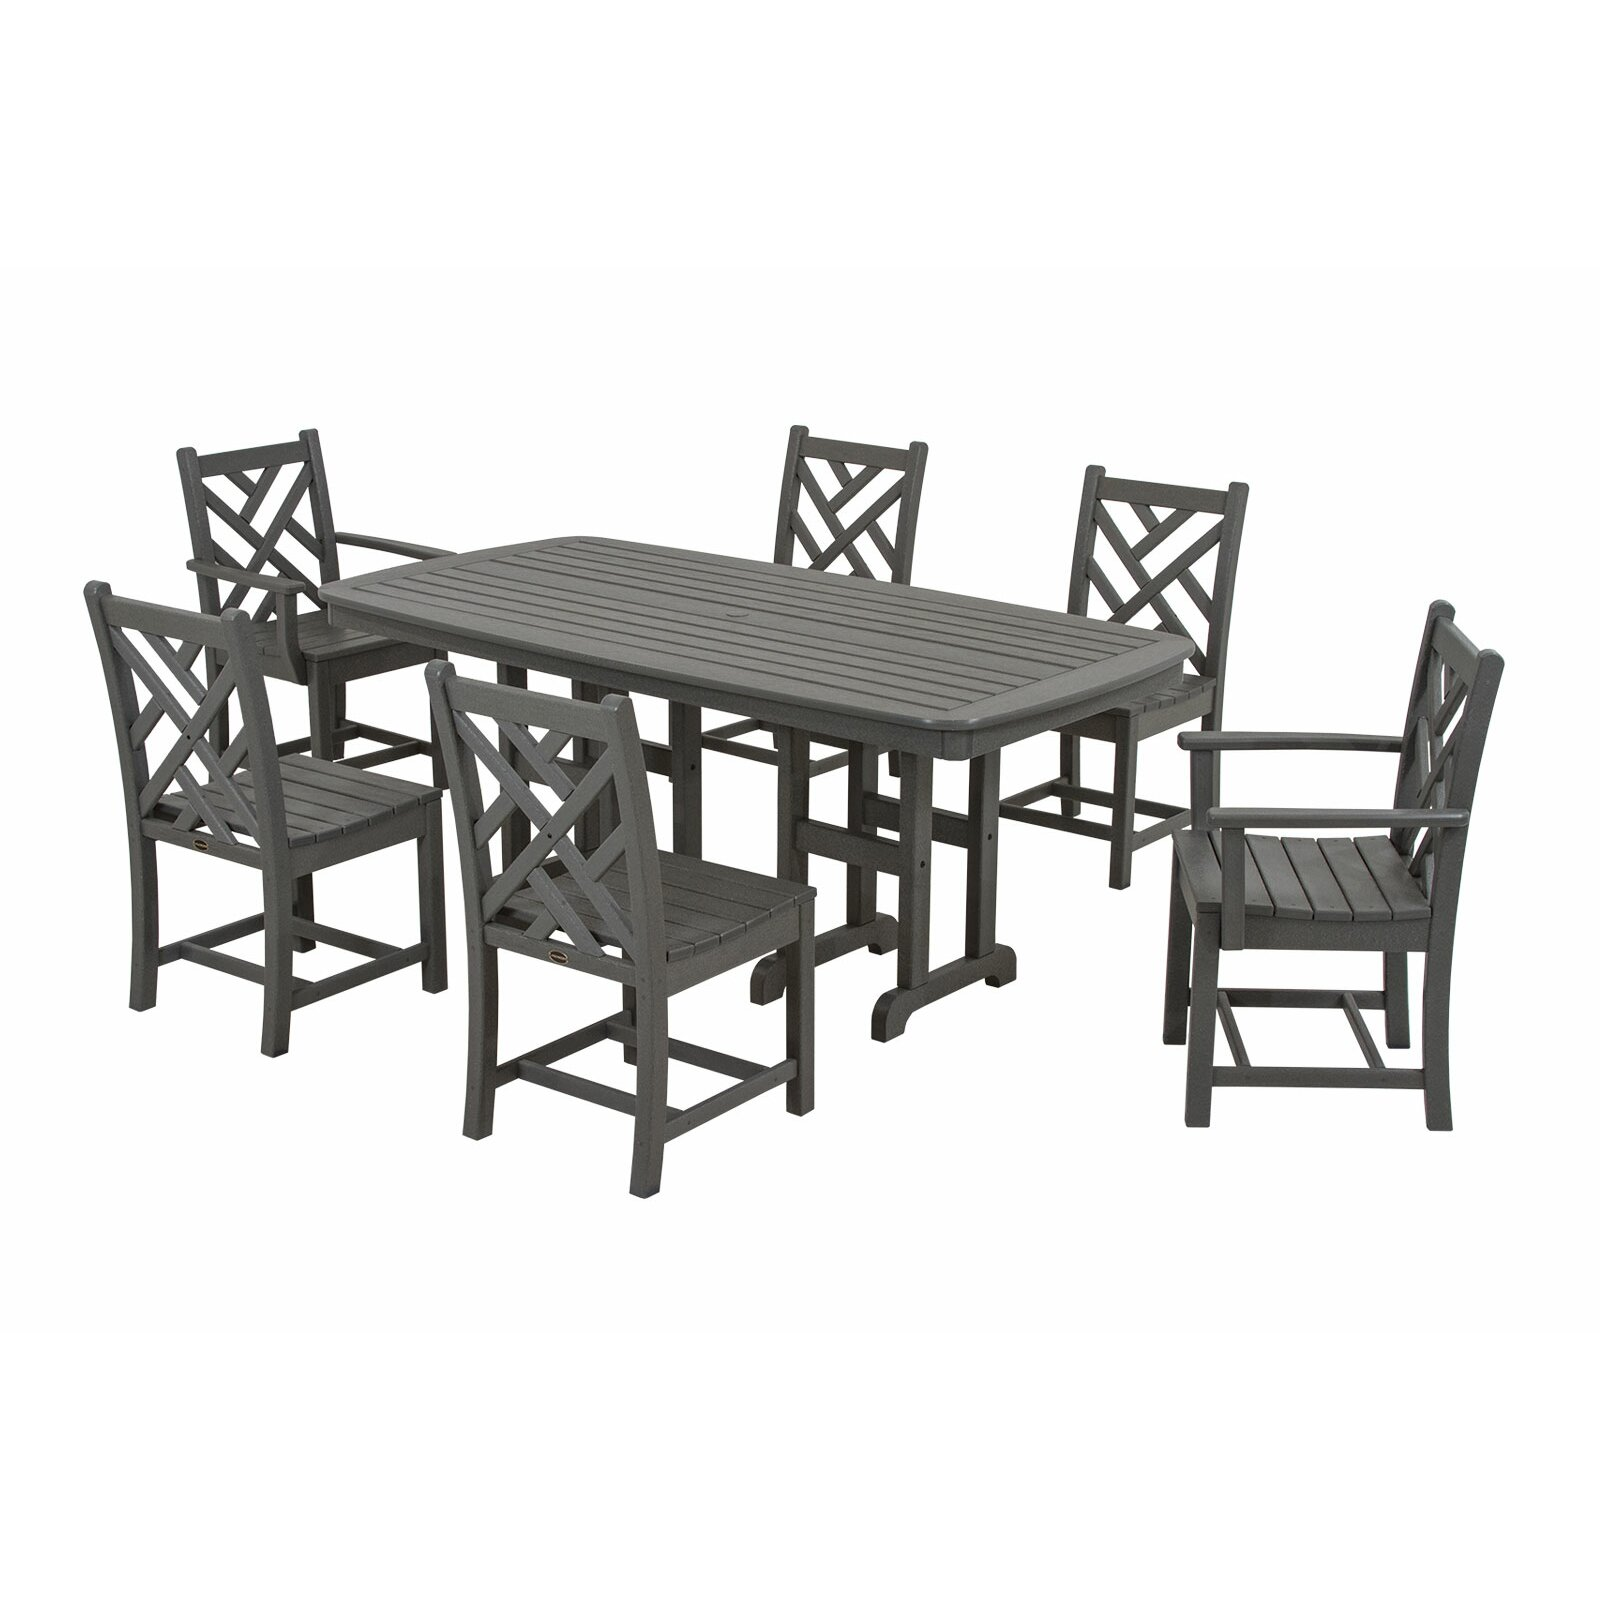 Polywood Chippendale 7 Piece Dining Set Reviews Wayfair